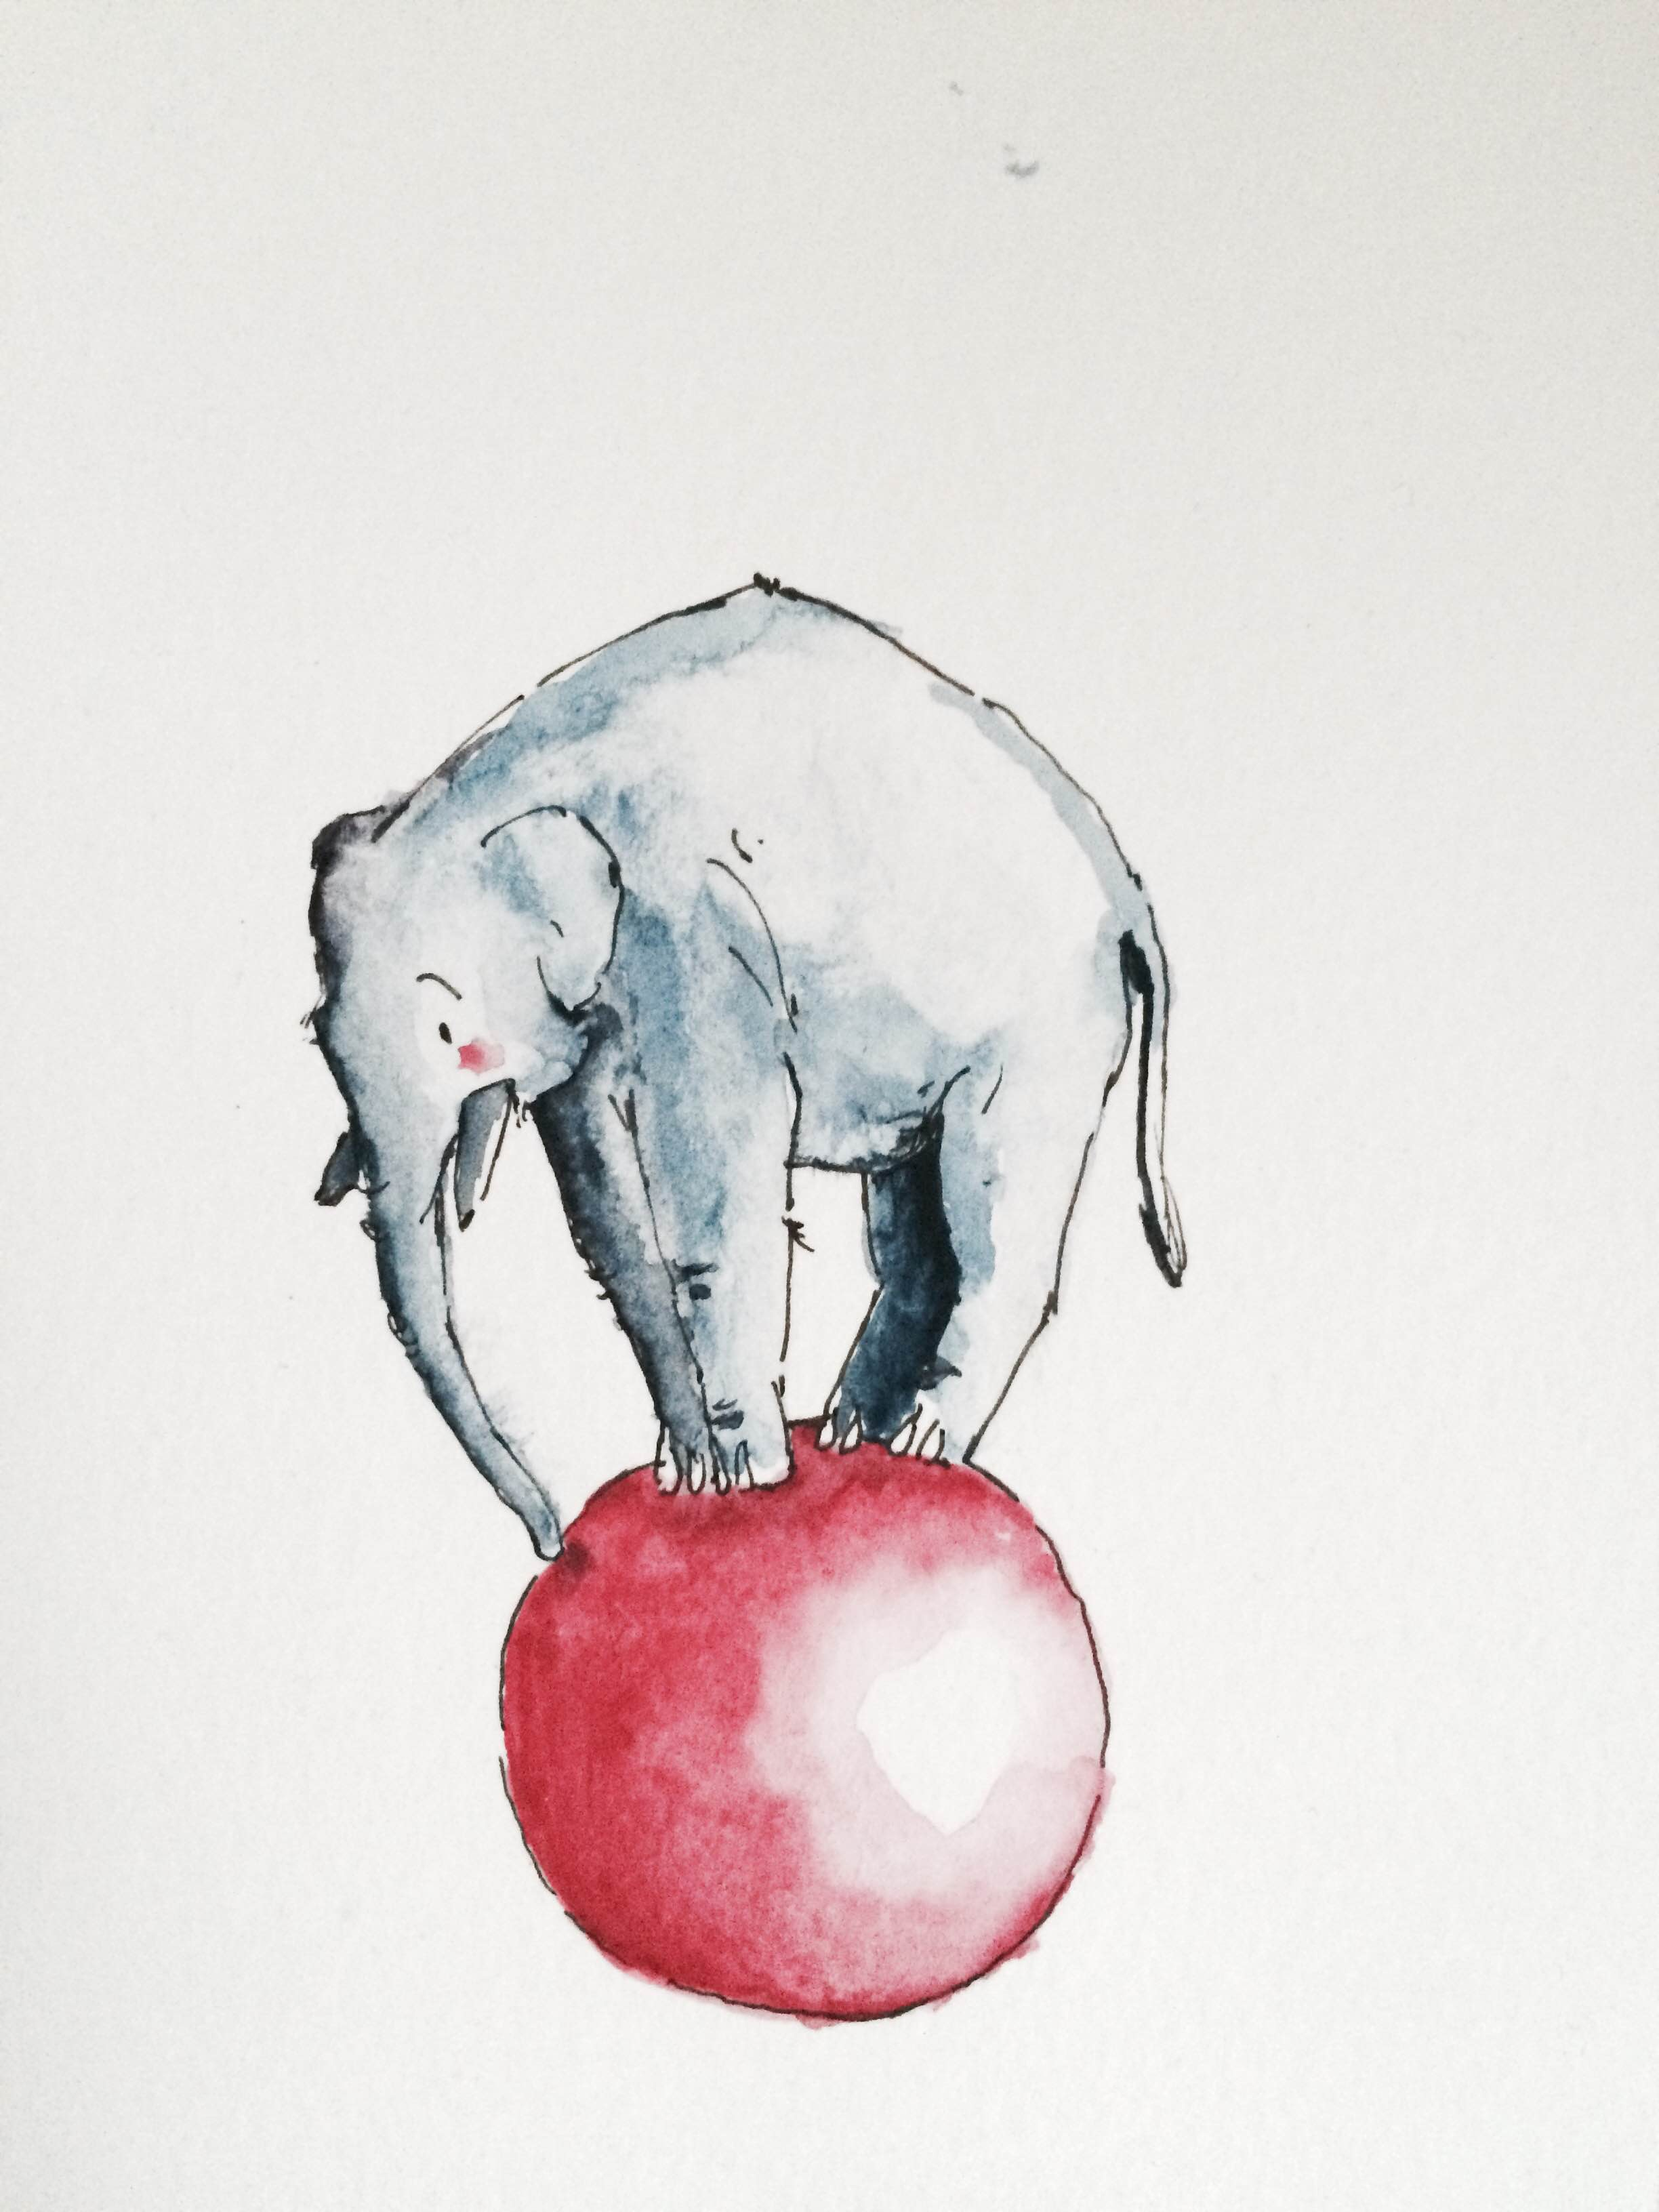 Doodlewash by Luke Scriven - watercolor sketch and children's illustration of elephant standing on red ball